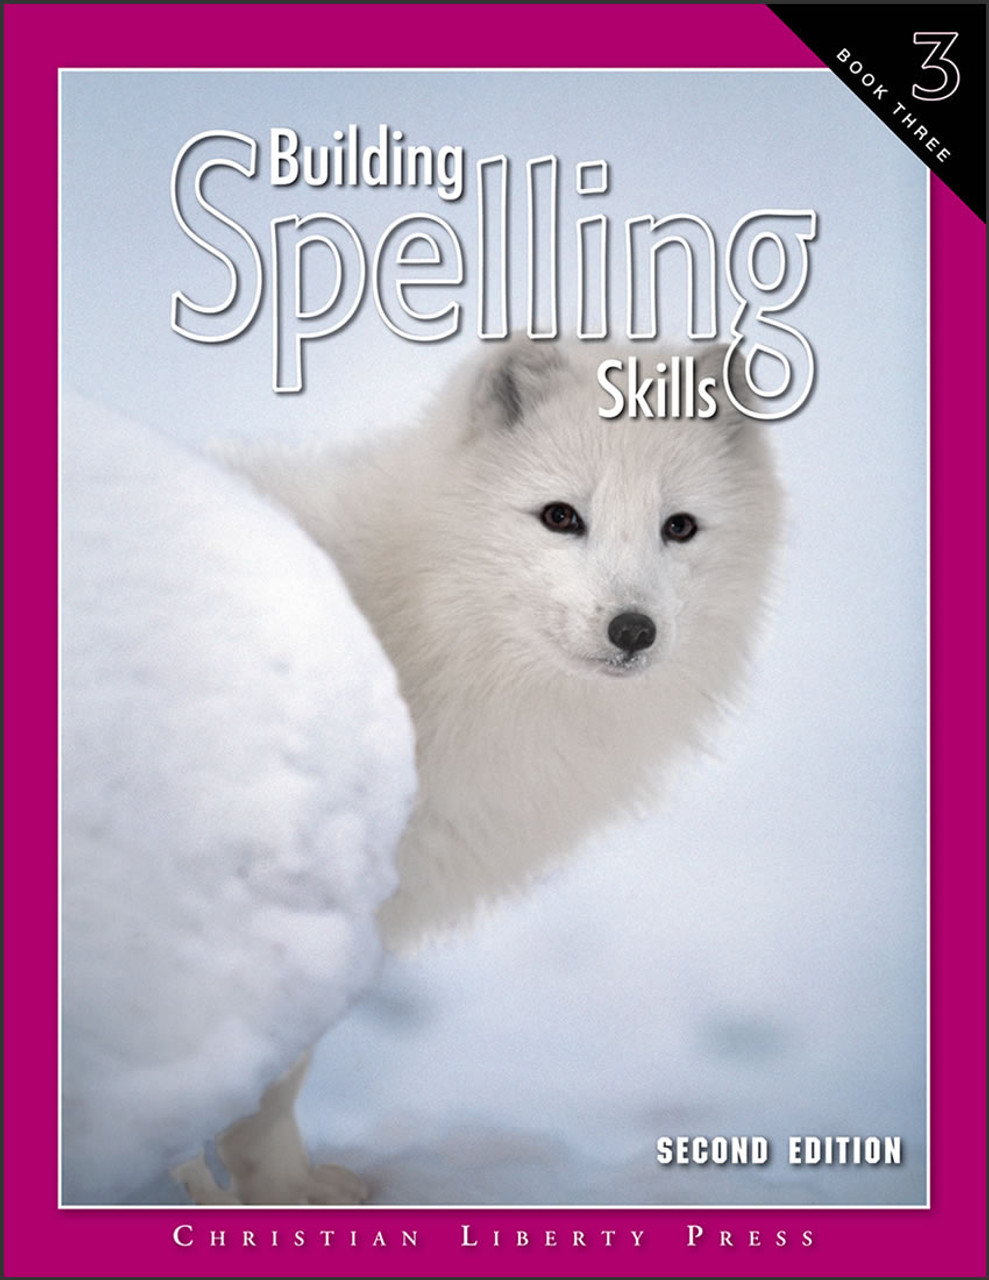 Building Spelling Skills 3, 2nd edition